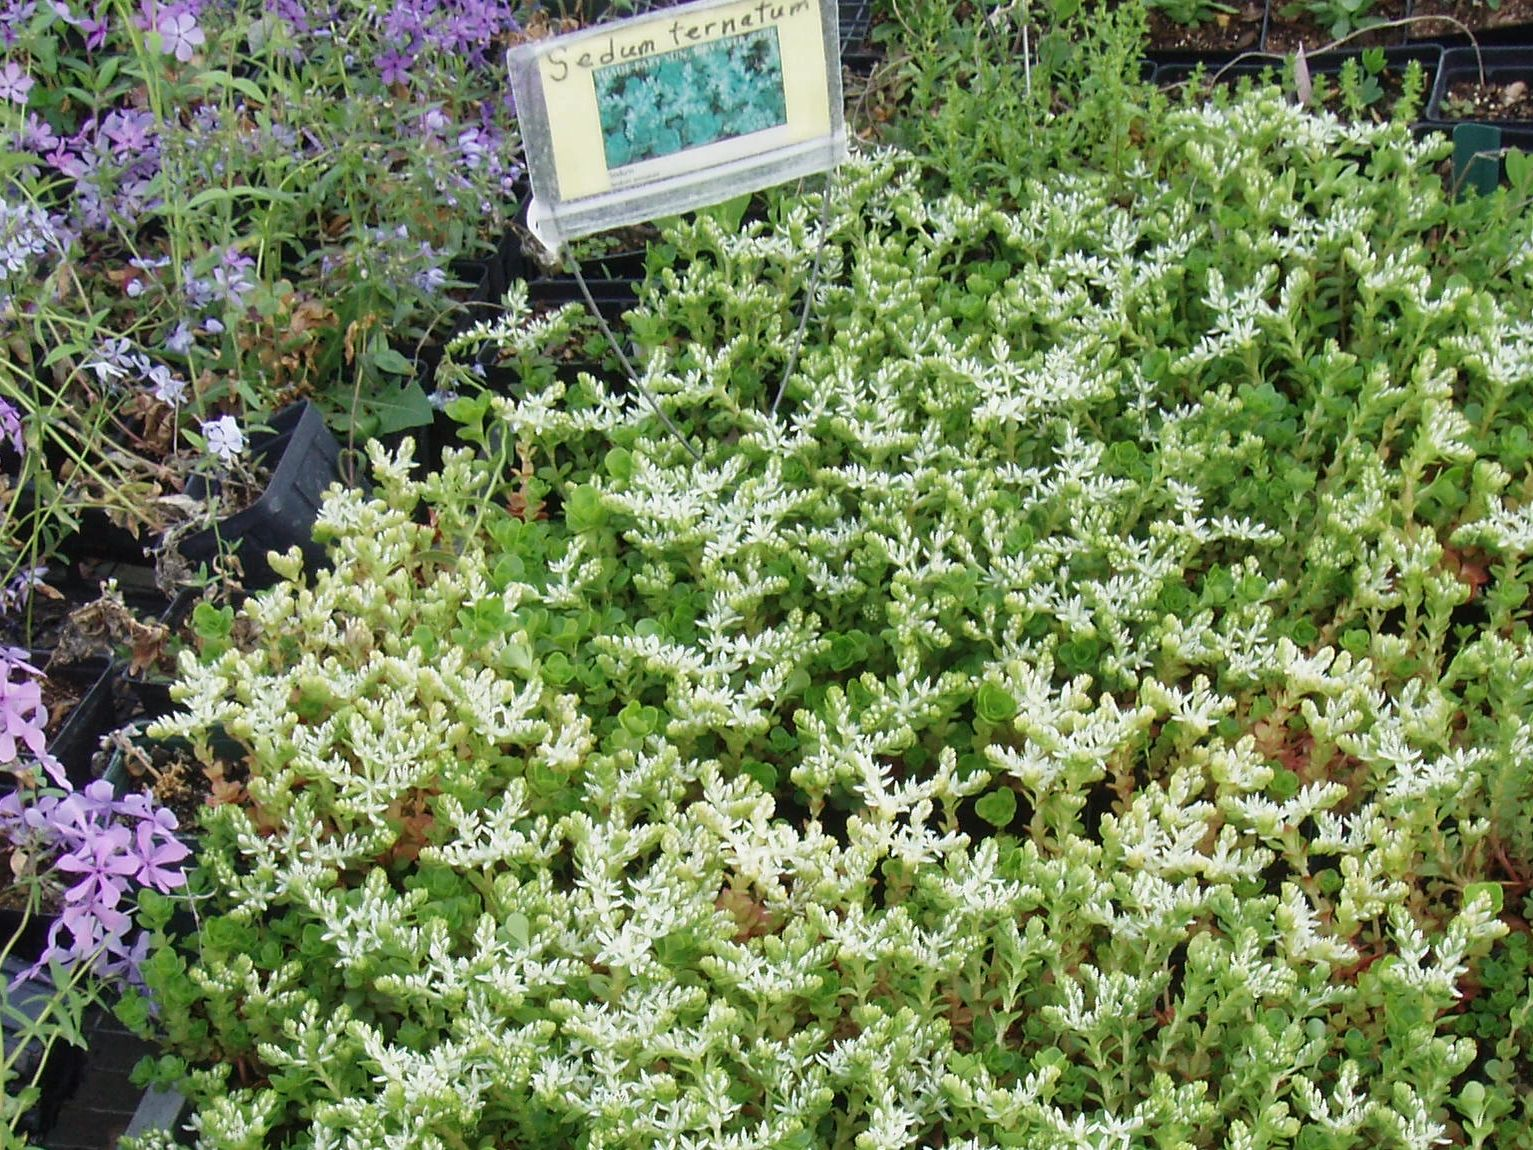 "{""blocks"":[{""key"":""2mmtb"",""text"":"" Sedum ternatum Woodland Stonecrop, widow's cross - potted plants email john@easywildflowers.com"",""type"":""unstyled"",""depth"":0,""inlineStyleRanges"":[],""entityRanges"":[],""data"":{}}],""entityMap"":{}}"